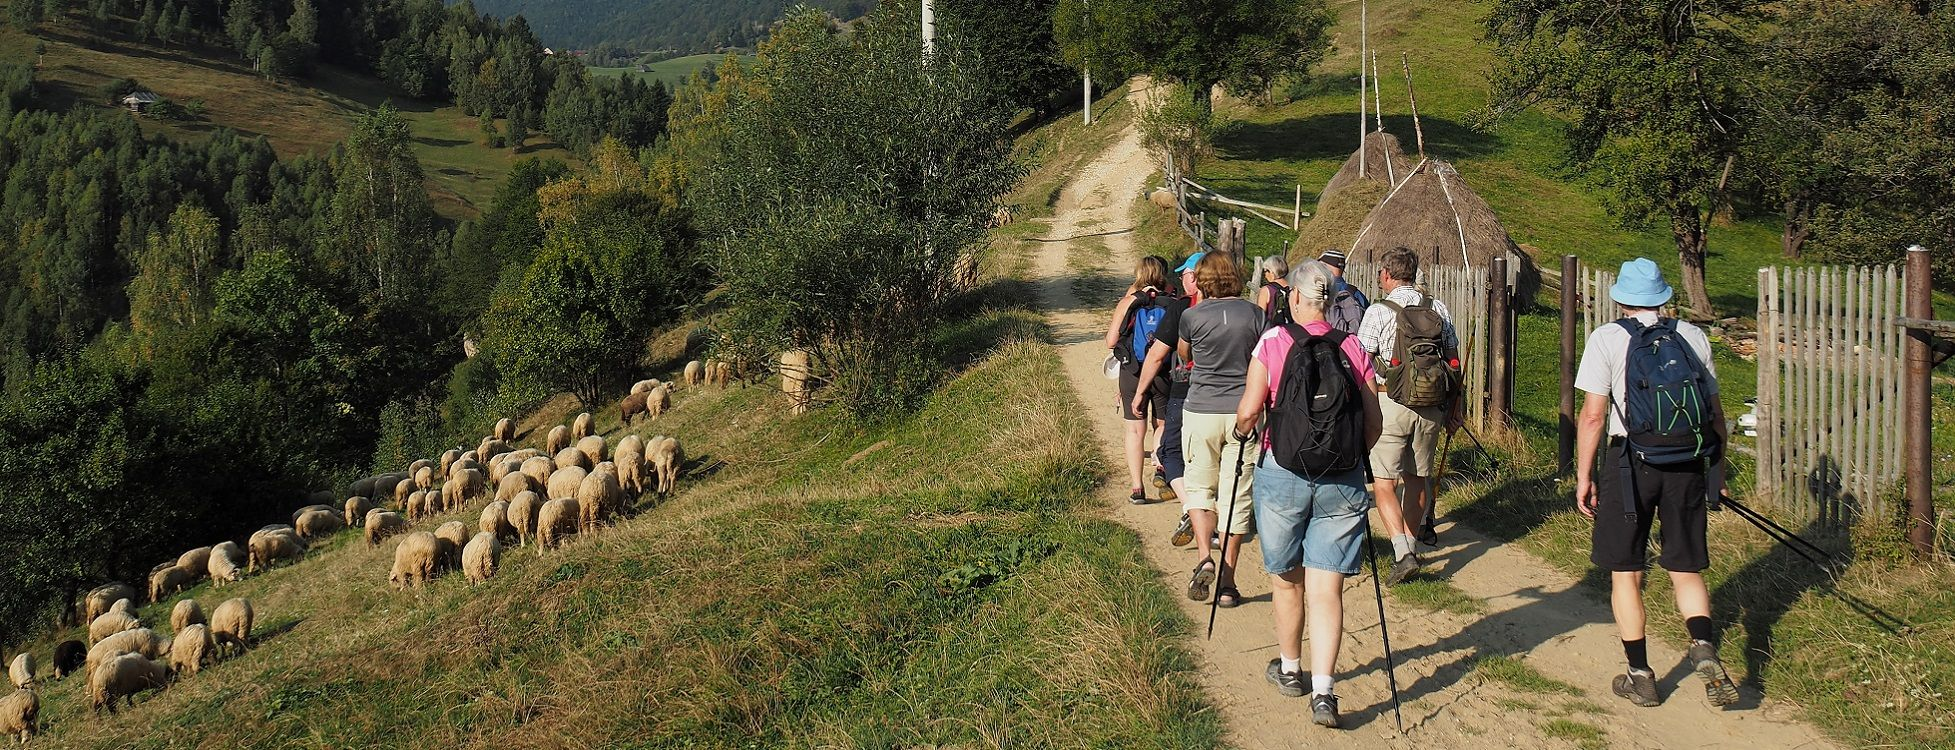 Adventure in Transylvania and Bear Watching - 7 days